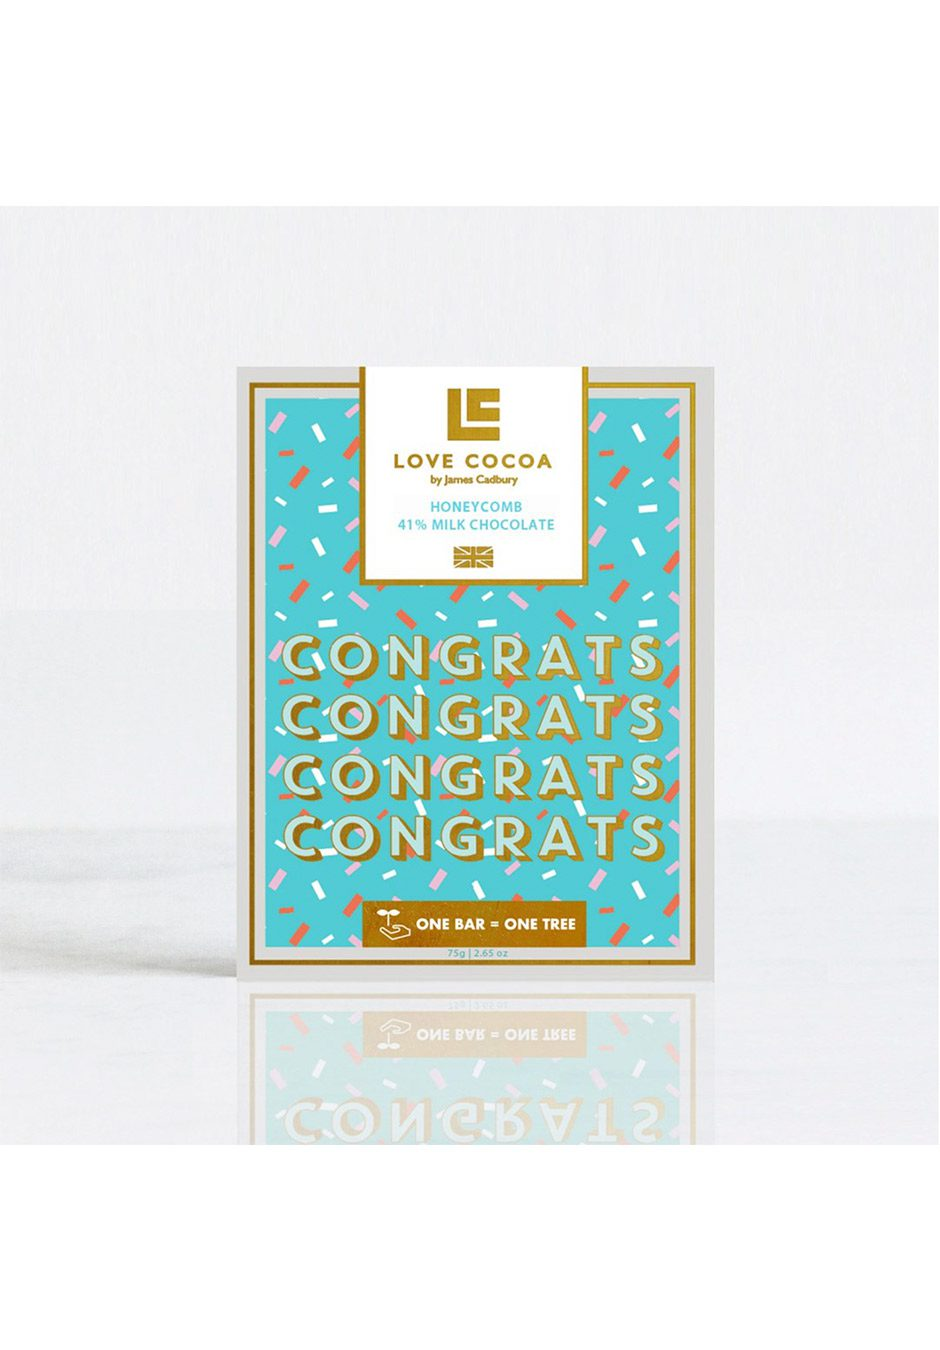 Love Cocoa 'Congratulations' | Honeycomb Milk Chocolate Bar | KeiCo Drinks